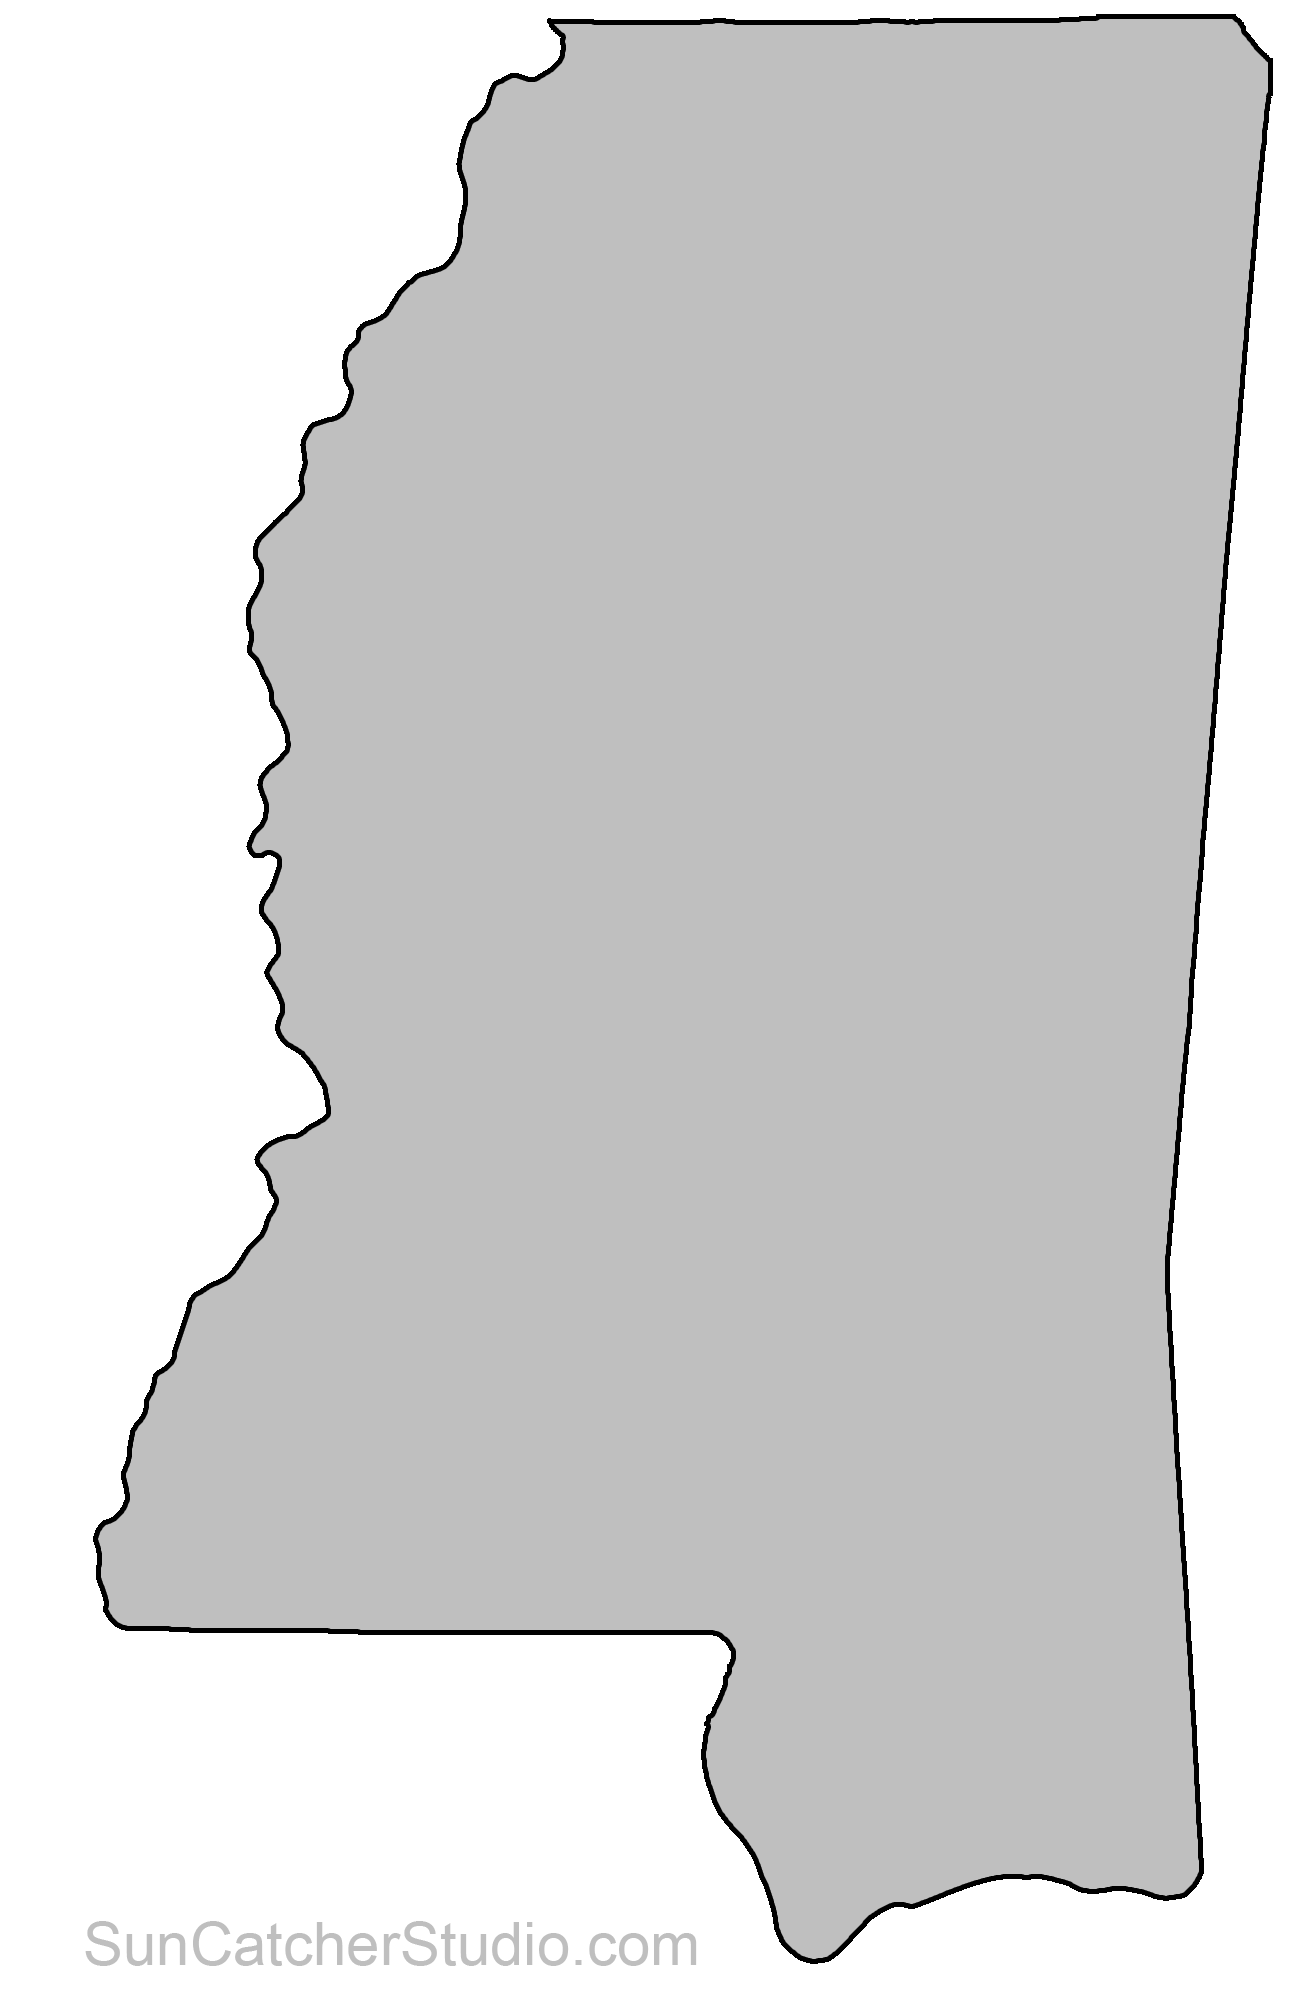 s in mississippi map Mississippi Map Outline Printable S 251548 Png Images Pngio s in mississippi map